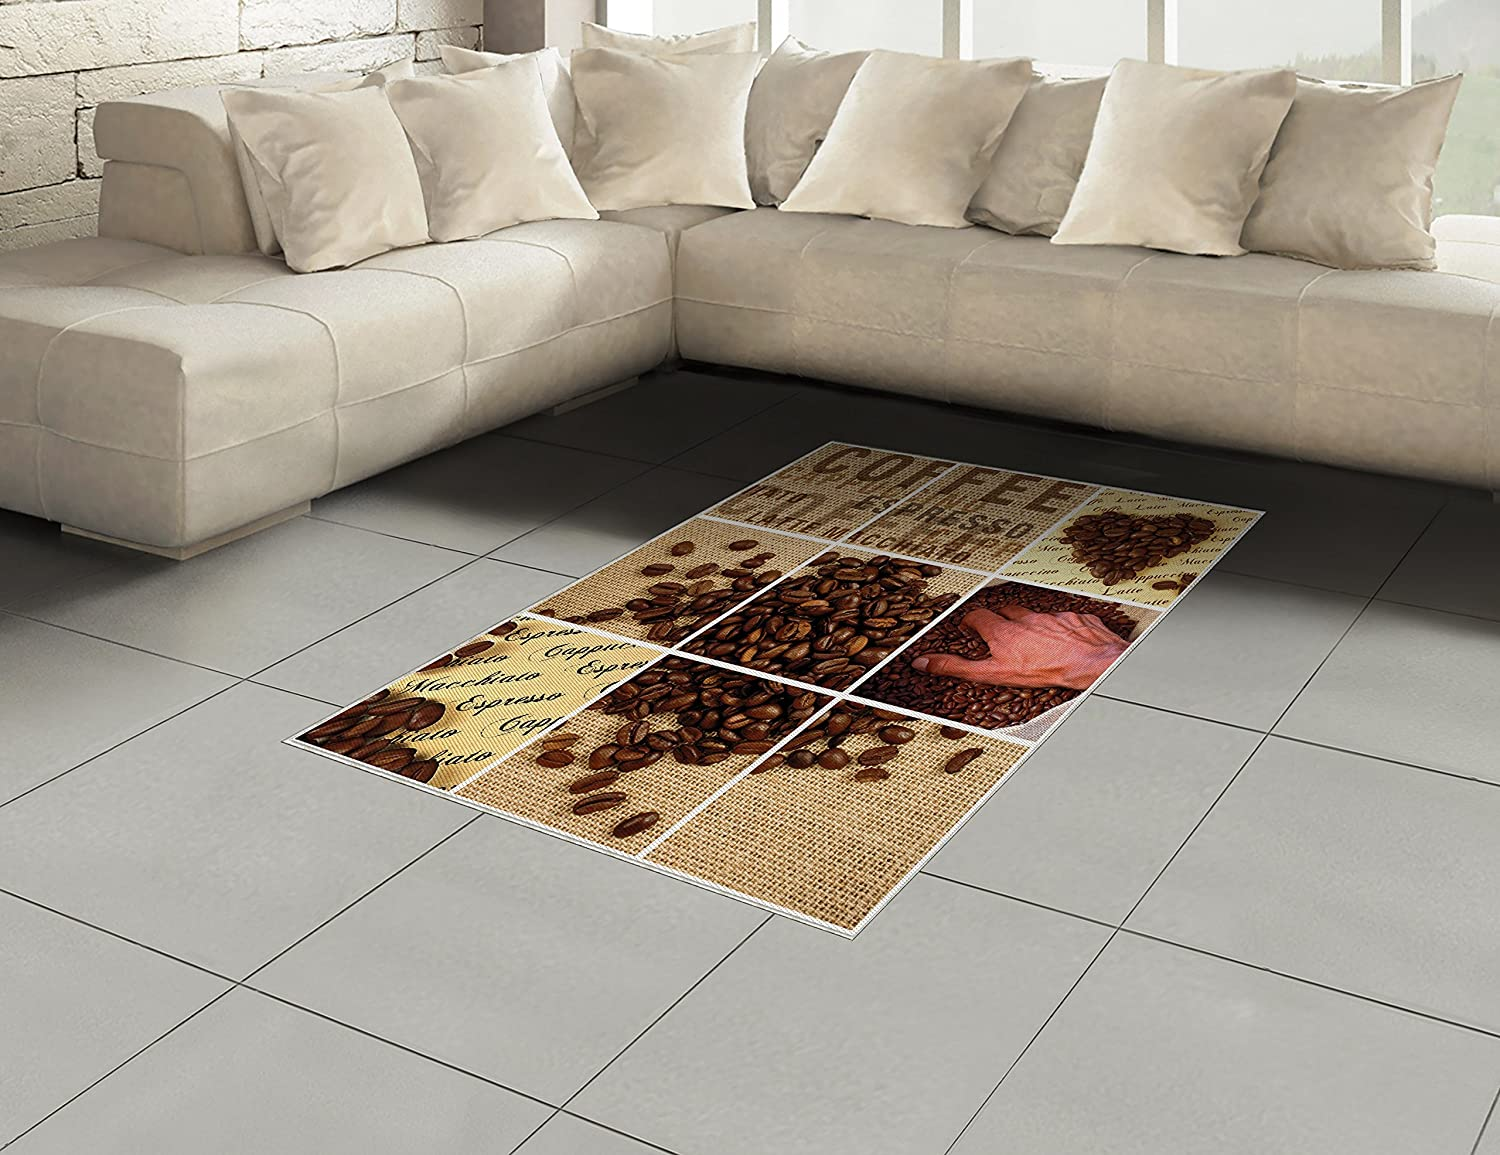 Amazon.com: Lunarable Brown Area Rug, Coffee Beans Heart ...